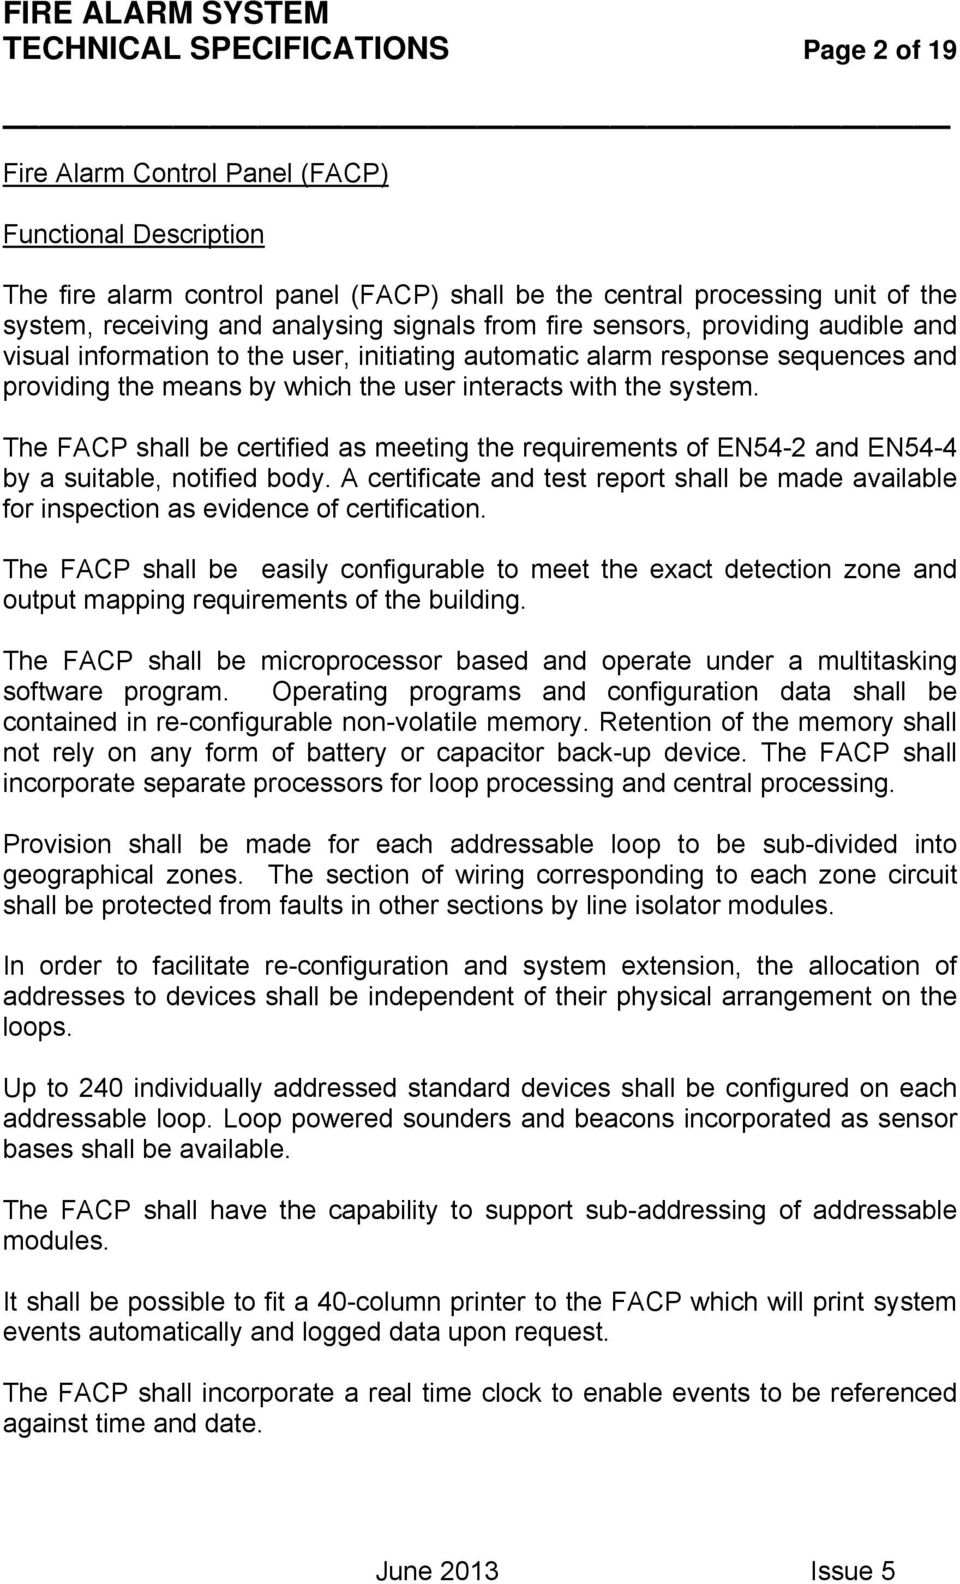 Fire Alarm System Technical Specifications Page 1 Of 19 Pdf Intelligent Schematic Diagram The Facp Shall Be Certified As Meeting Requirements En54 2 And